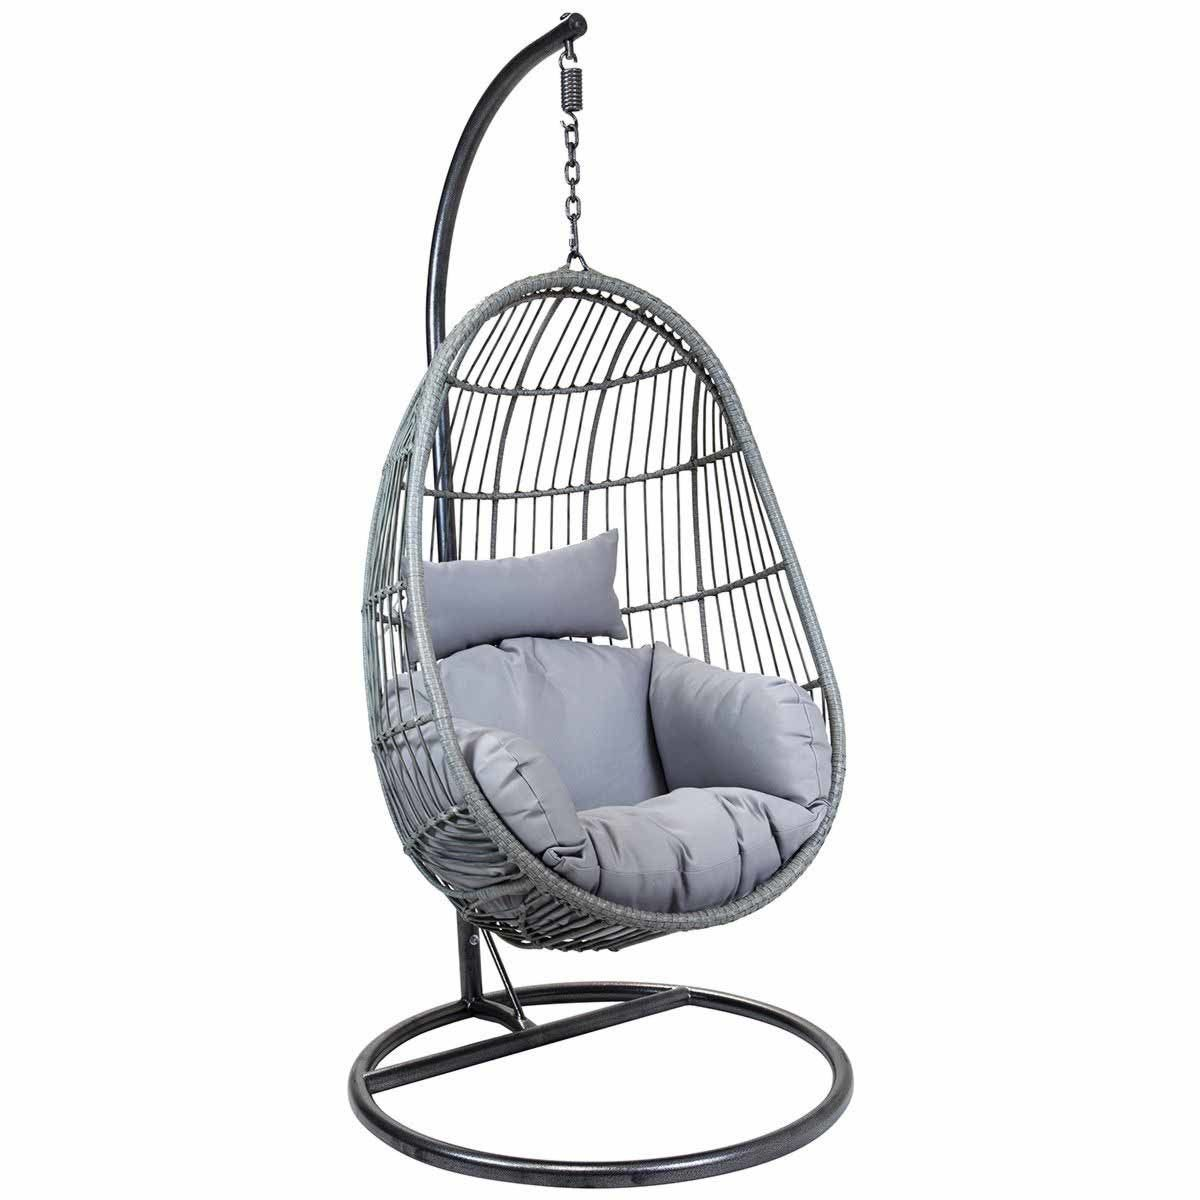 Charles Bentley Rattan Egg Shaped Swing Chair – Grey